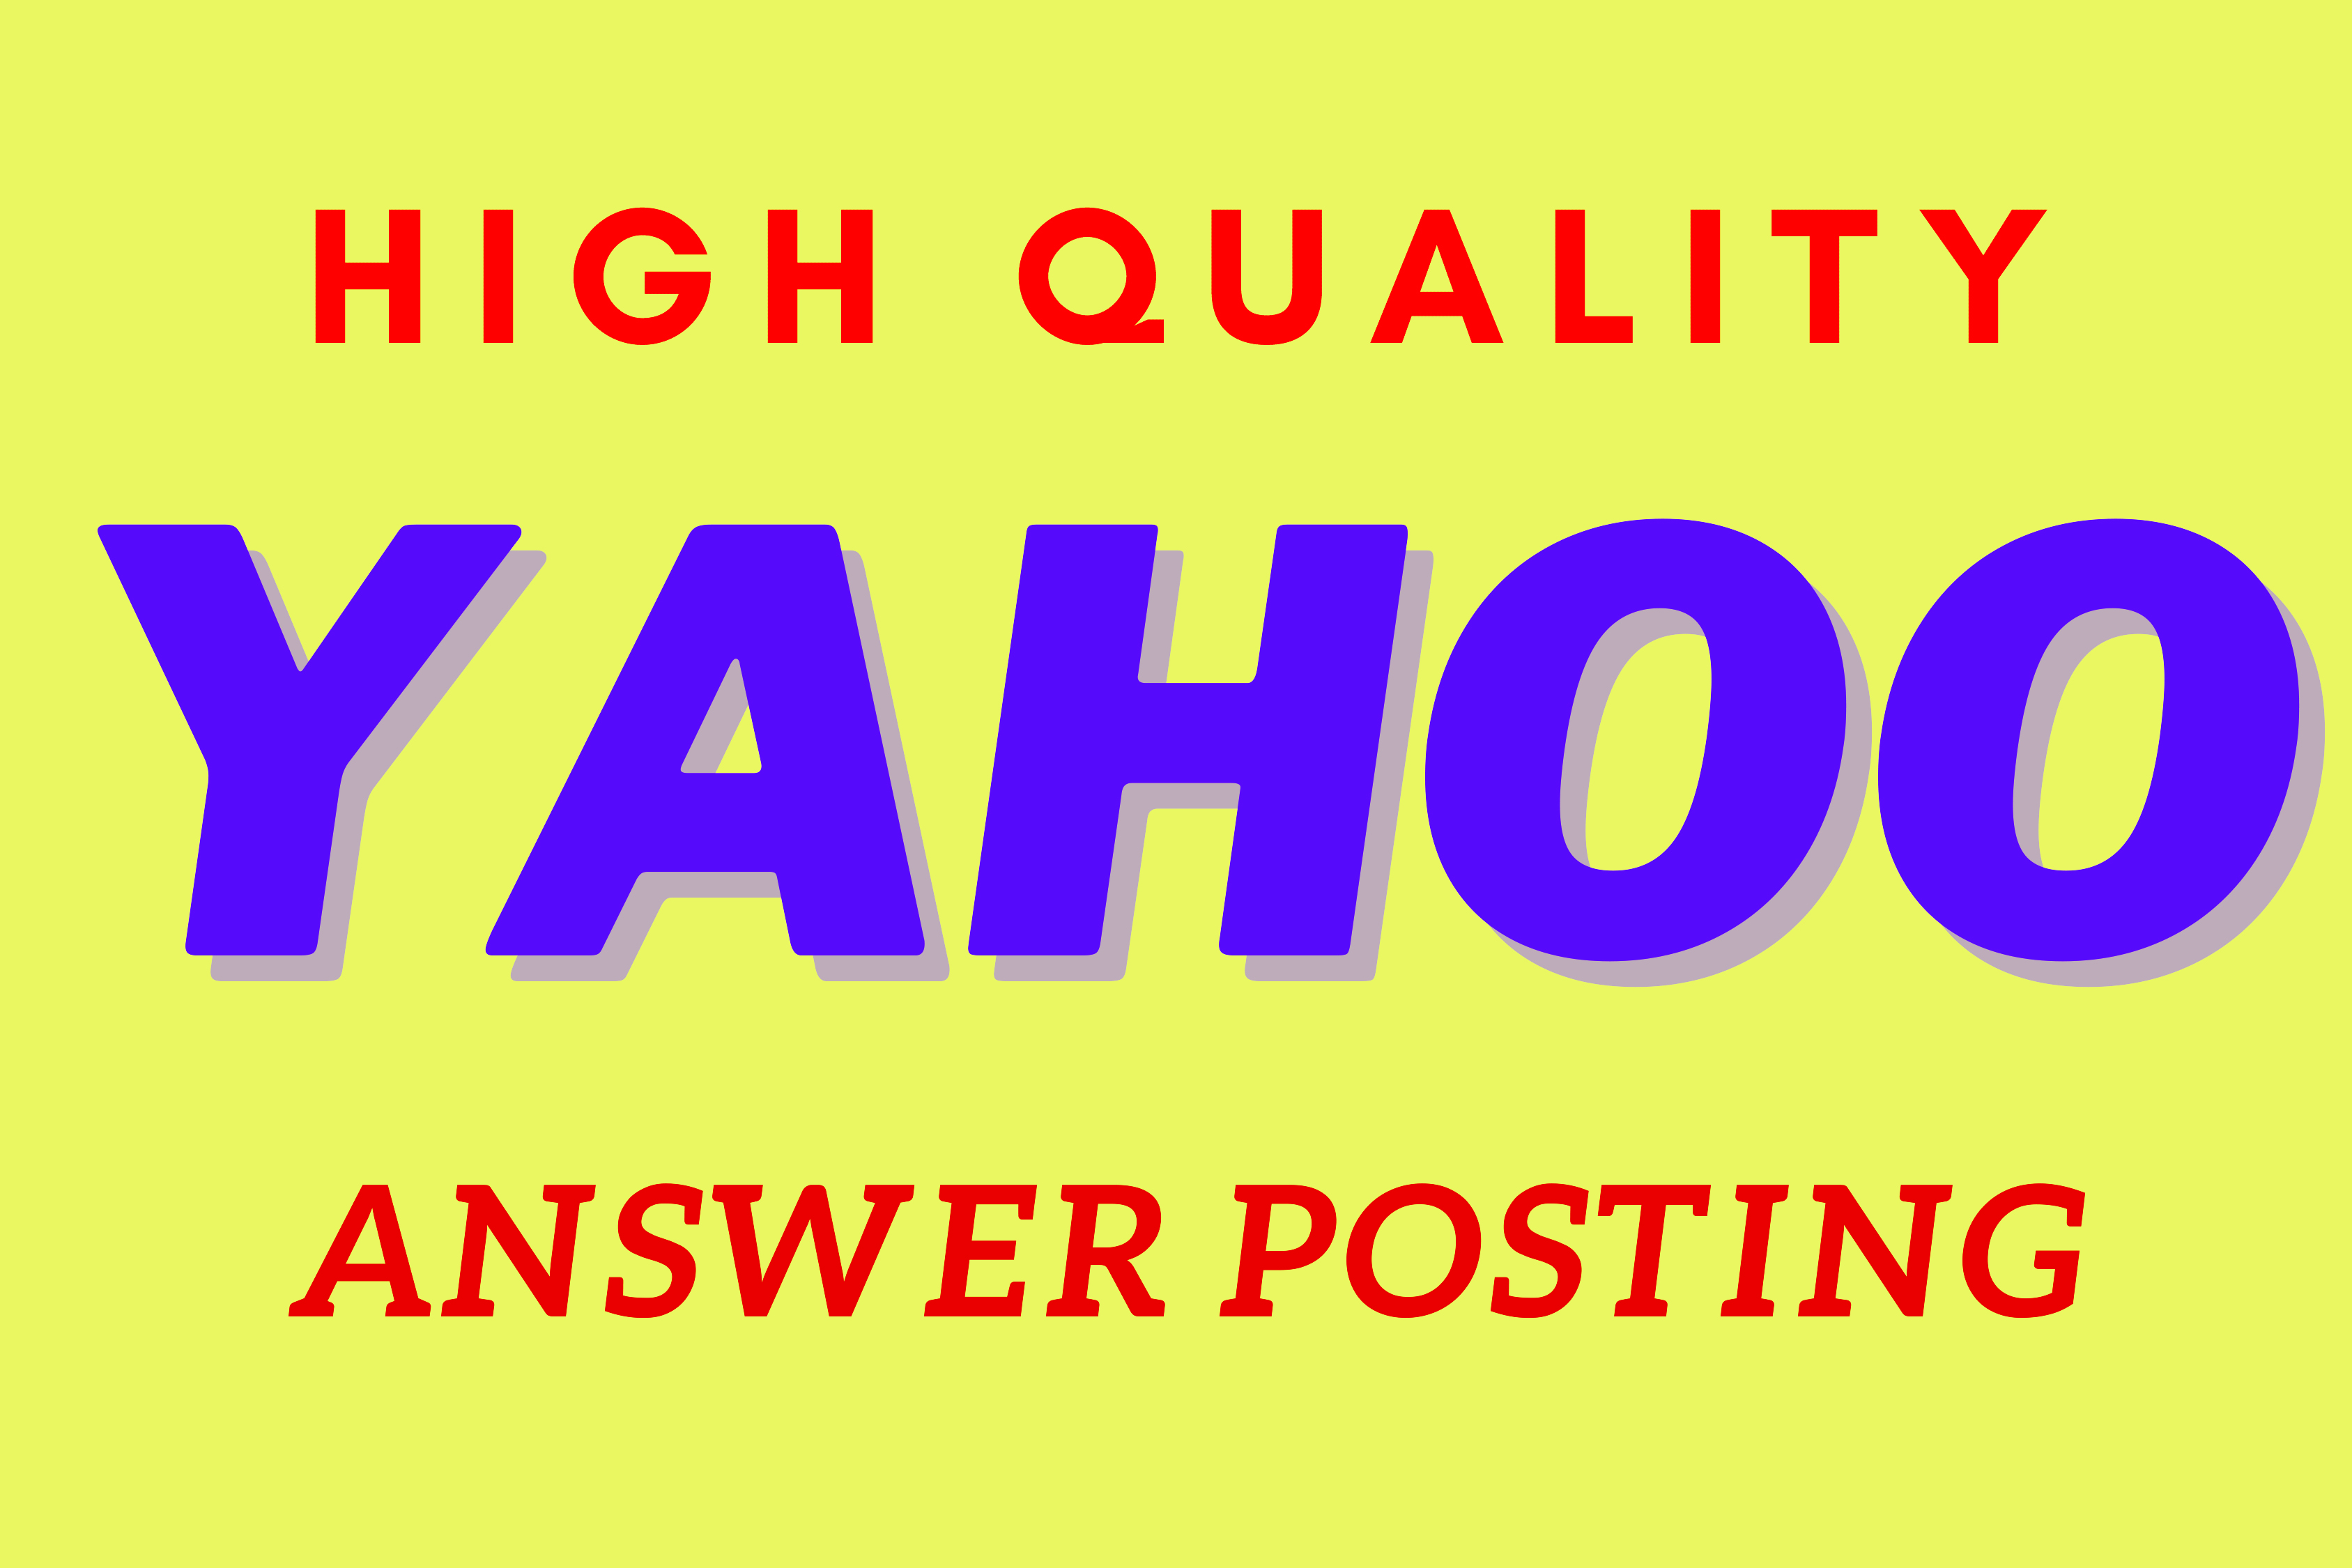 I will promote your website with 12 High Quality Yahoo answer